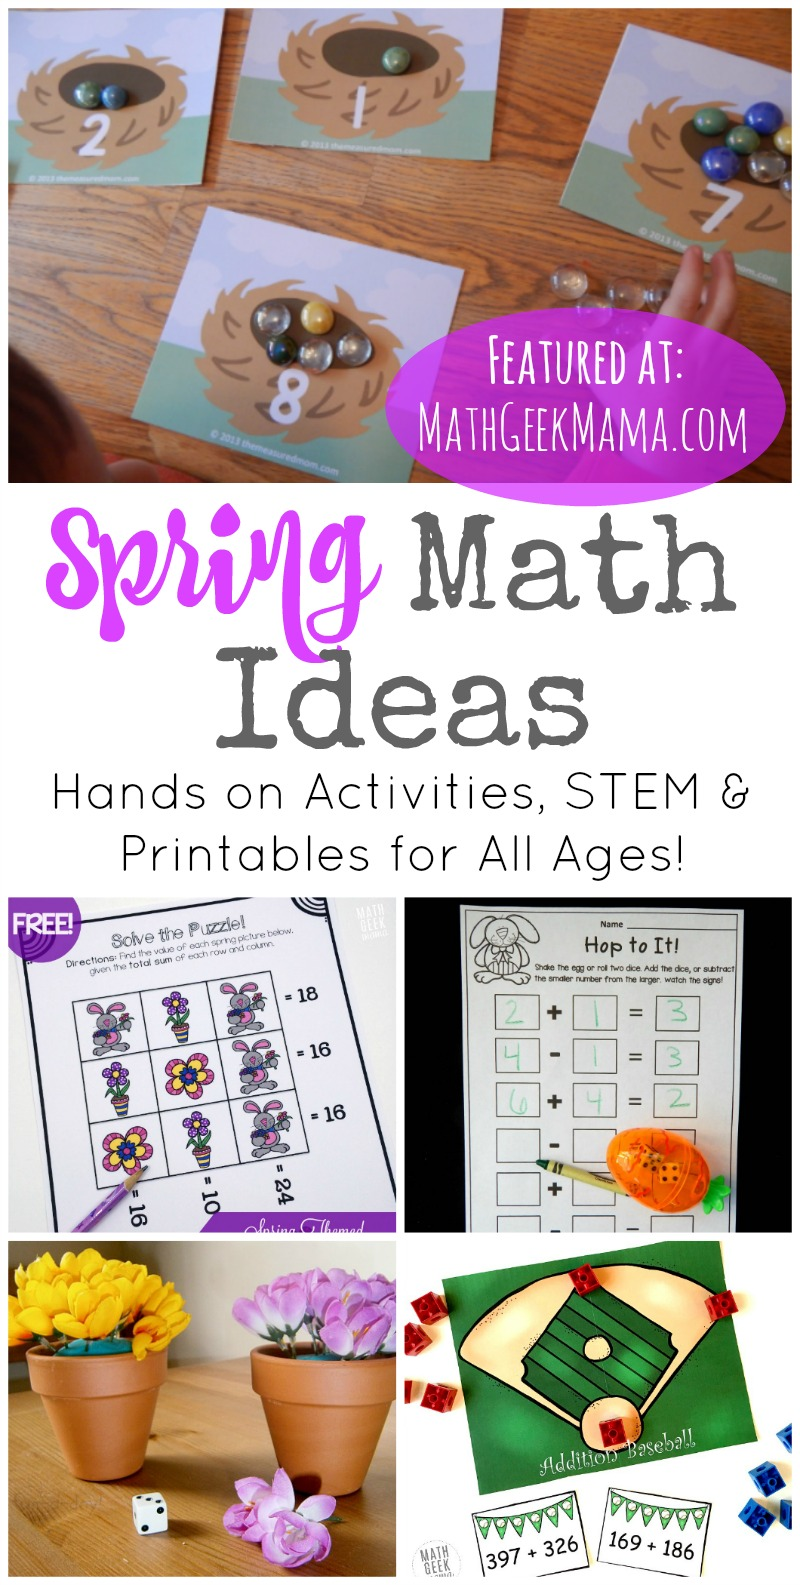 medium resolution of 50+ Spring Math Ideas for Grades K-8